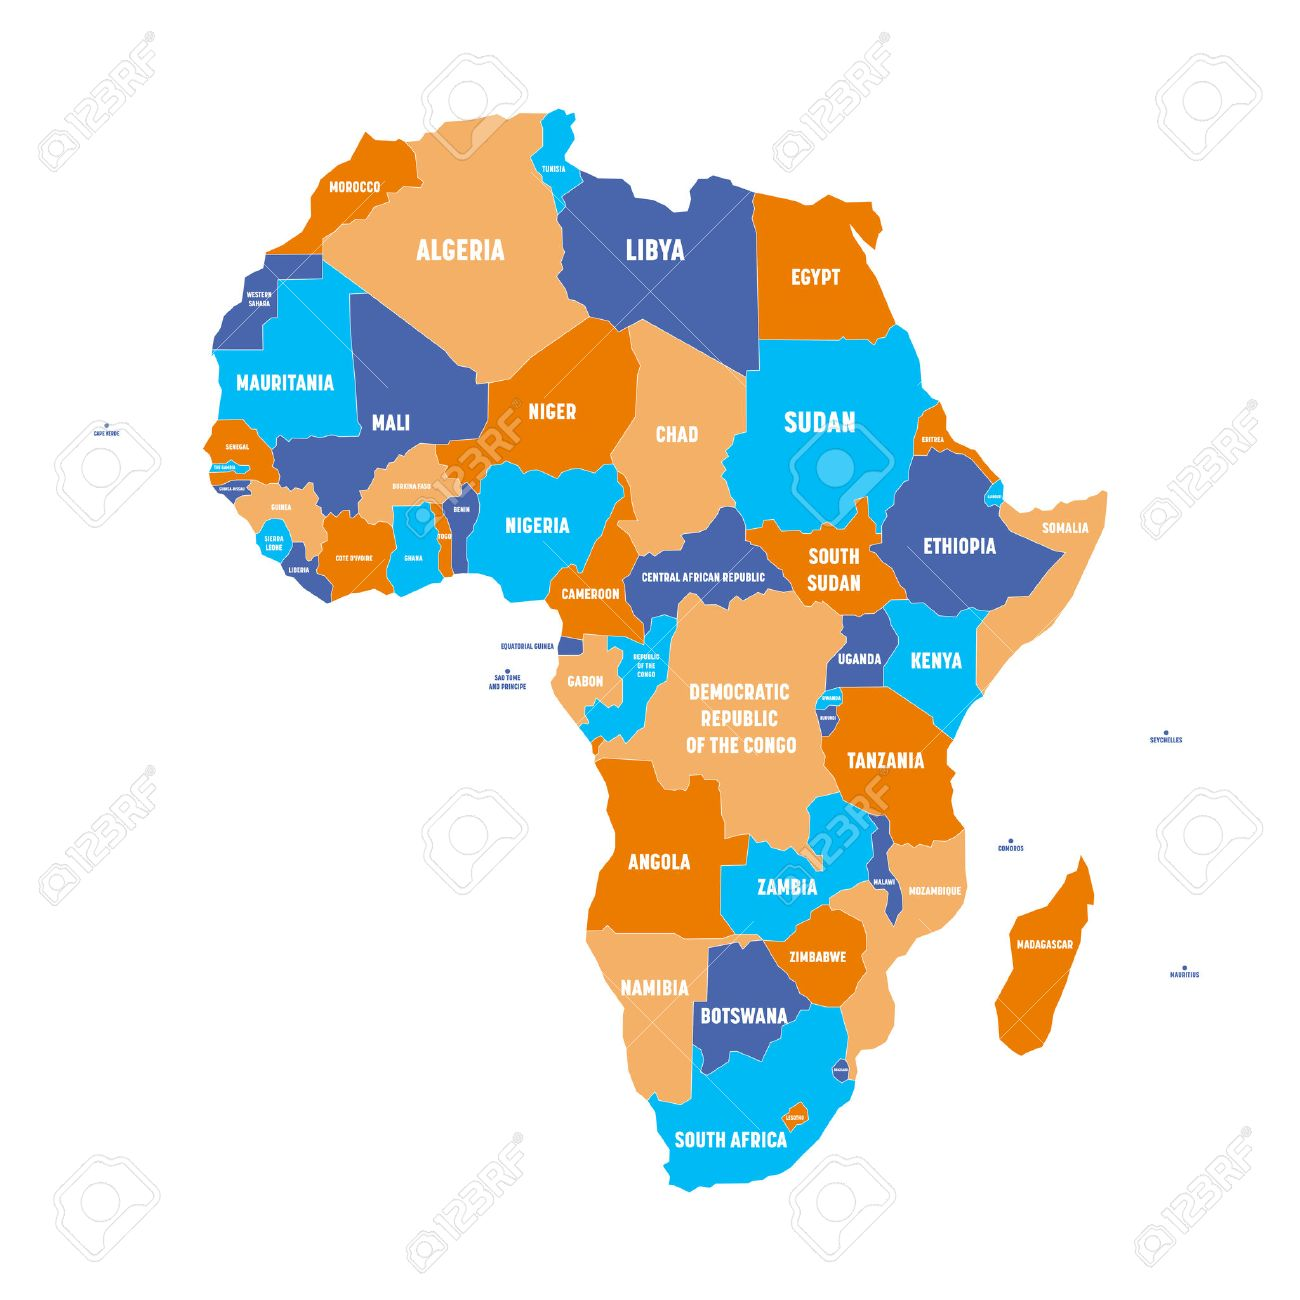 Multicolored political map of africa continent with national multicolored political map of africa continent with national borders and country name labels on white background gumiabroncs Image collections